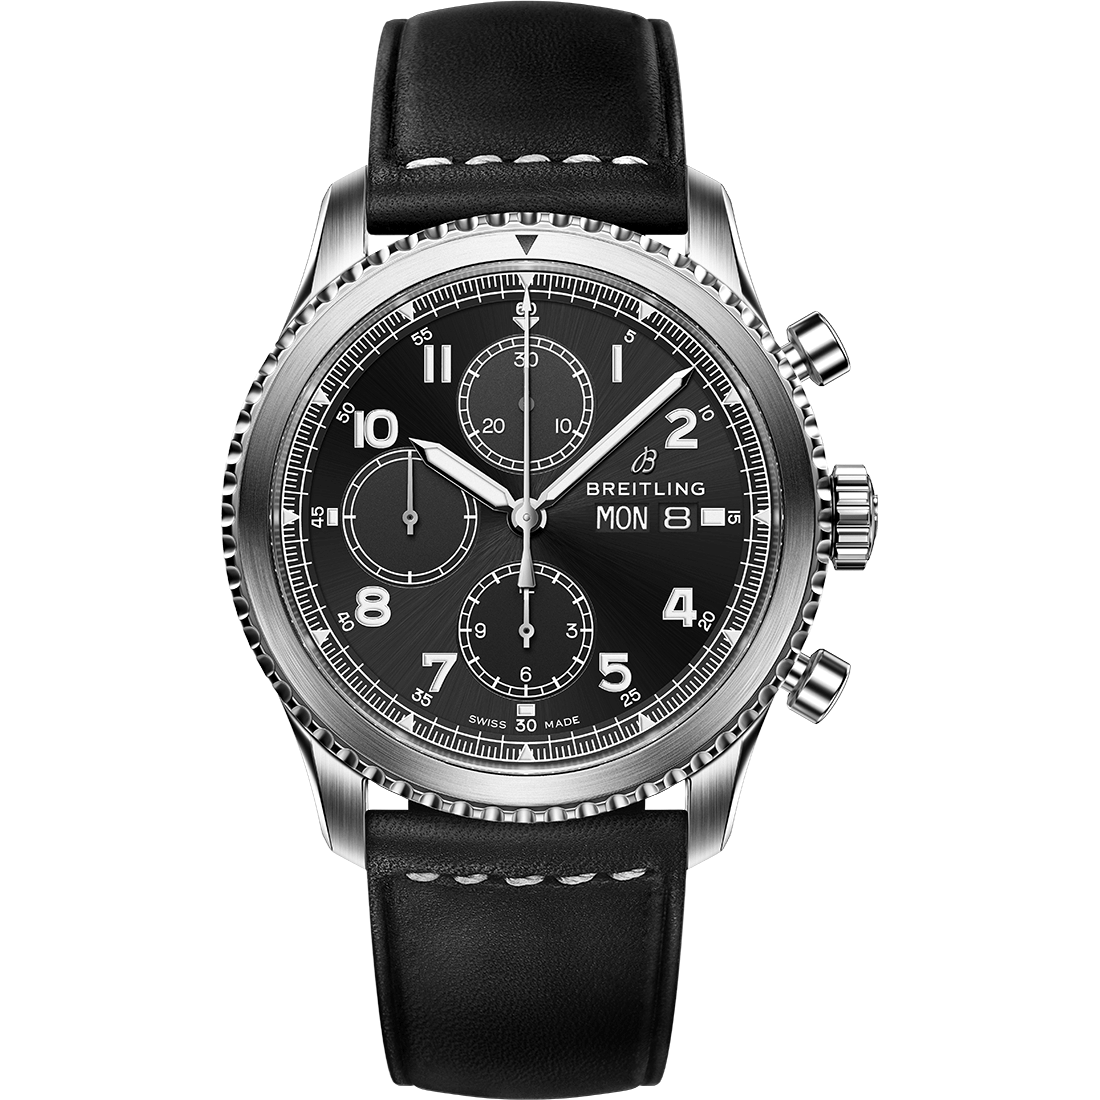 navitimer-8-chronograph-with-black-dial-and-black-leather-strap